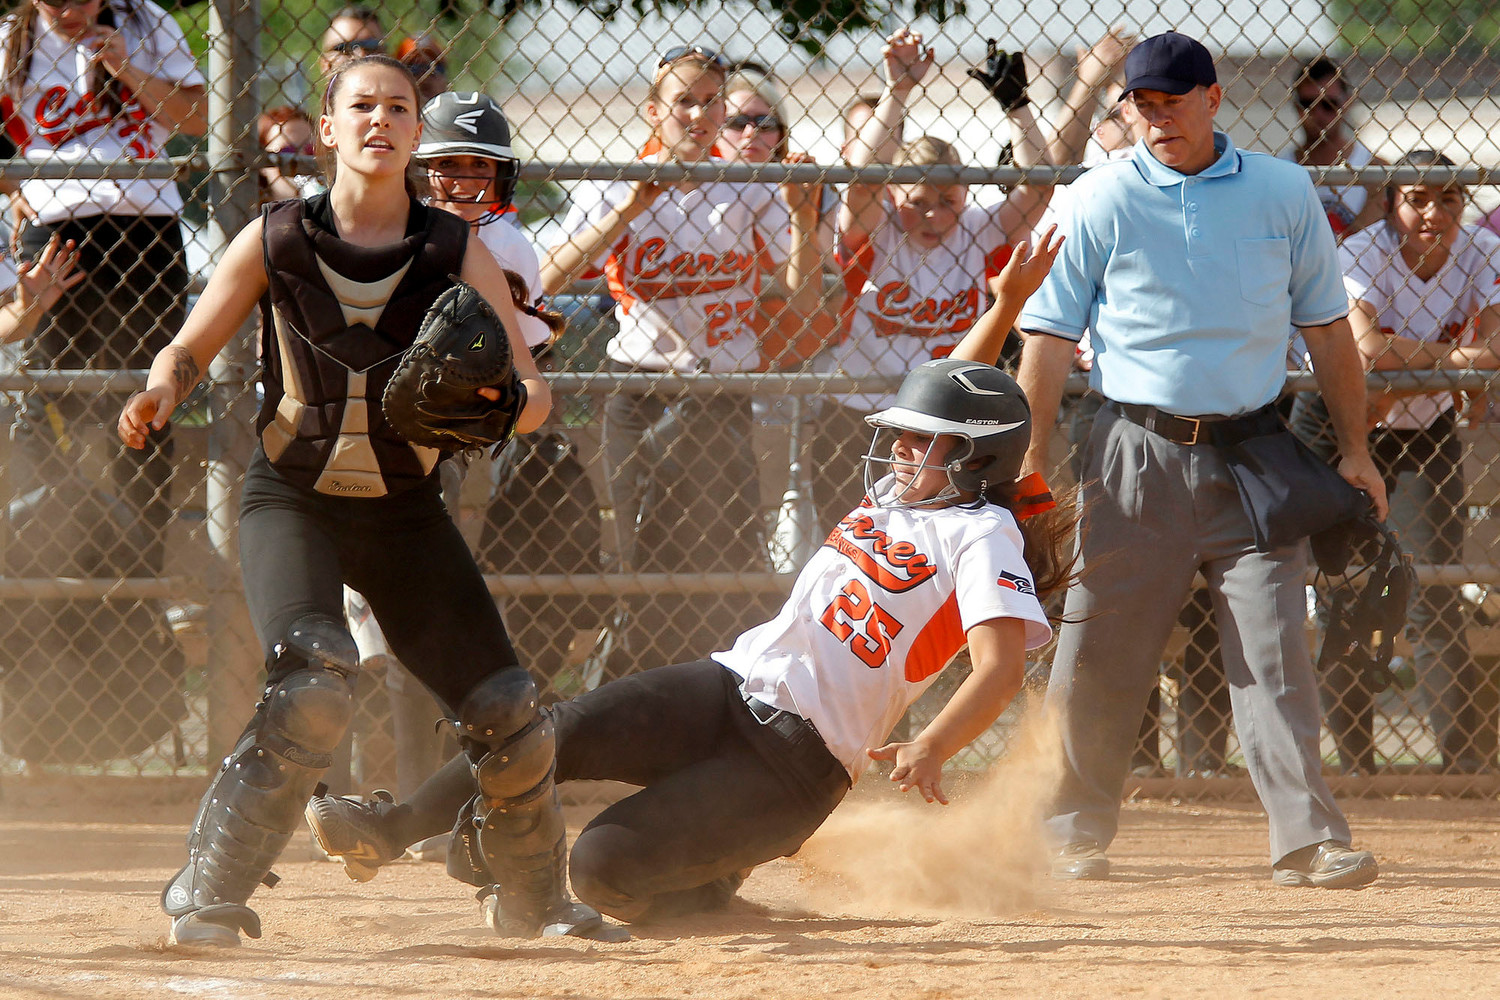 Rebecca Vilchez scoring in the 2014 Long Island Class A championship series against Sayville.